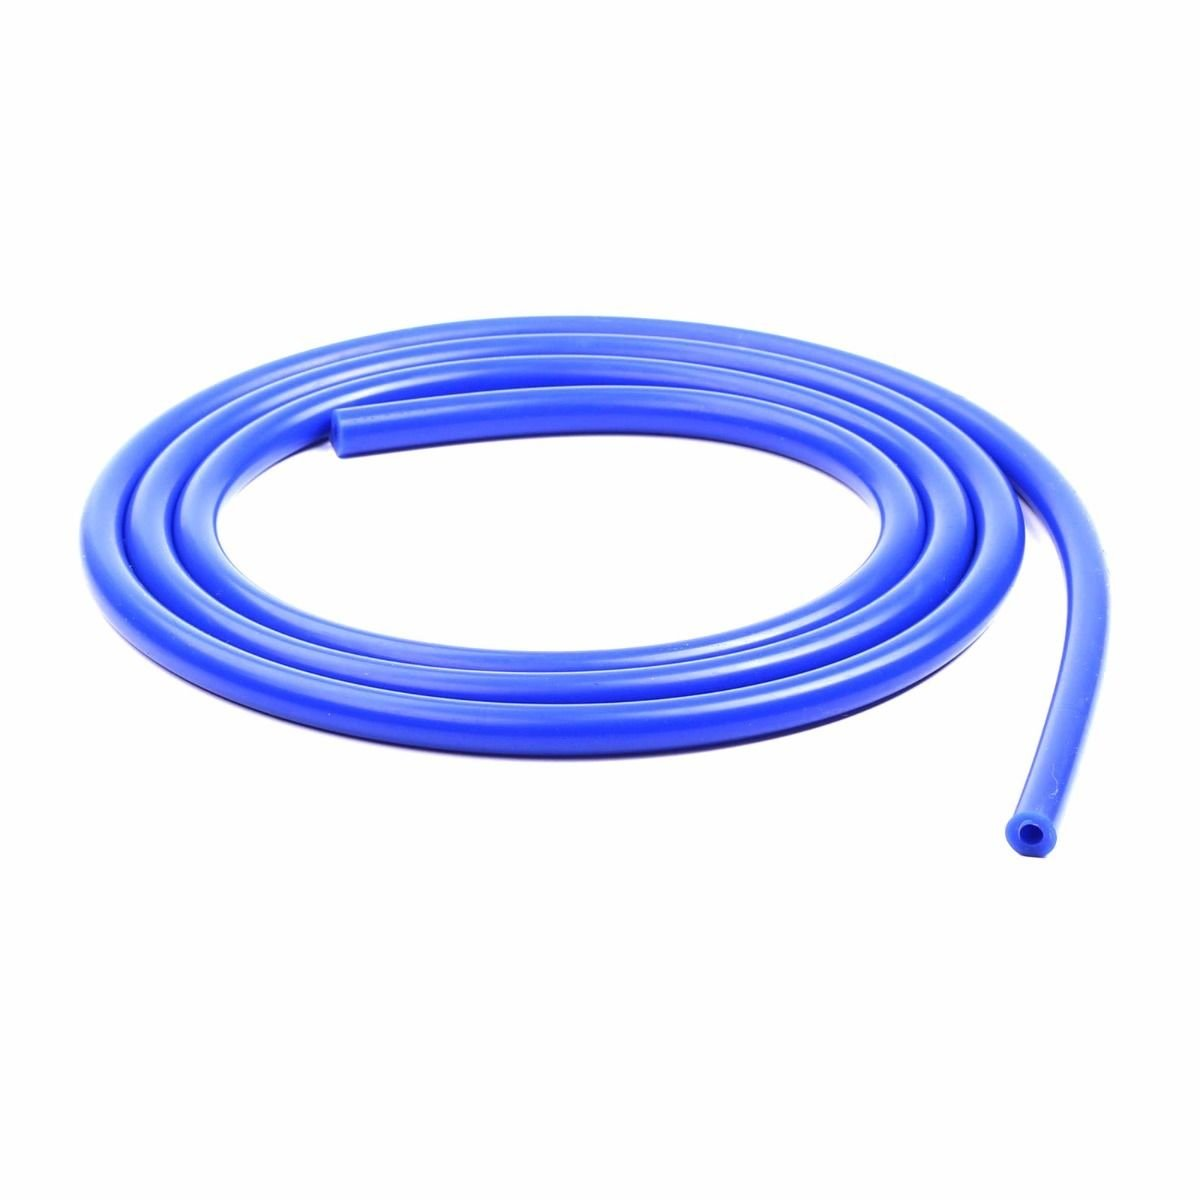 1/4' 6mm Silicone Vacuum Hose Tube High Performance 1 Foot Blue yjracing